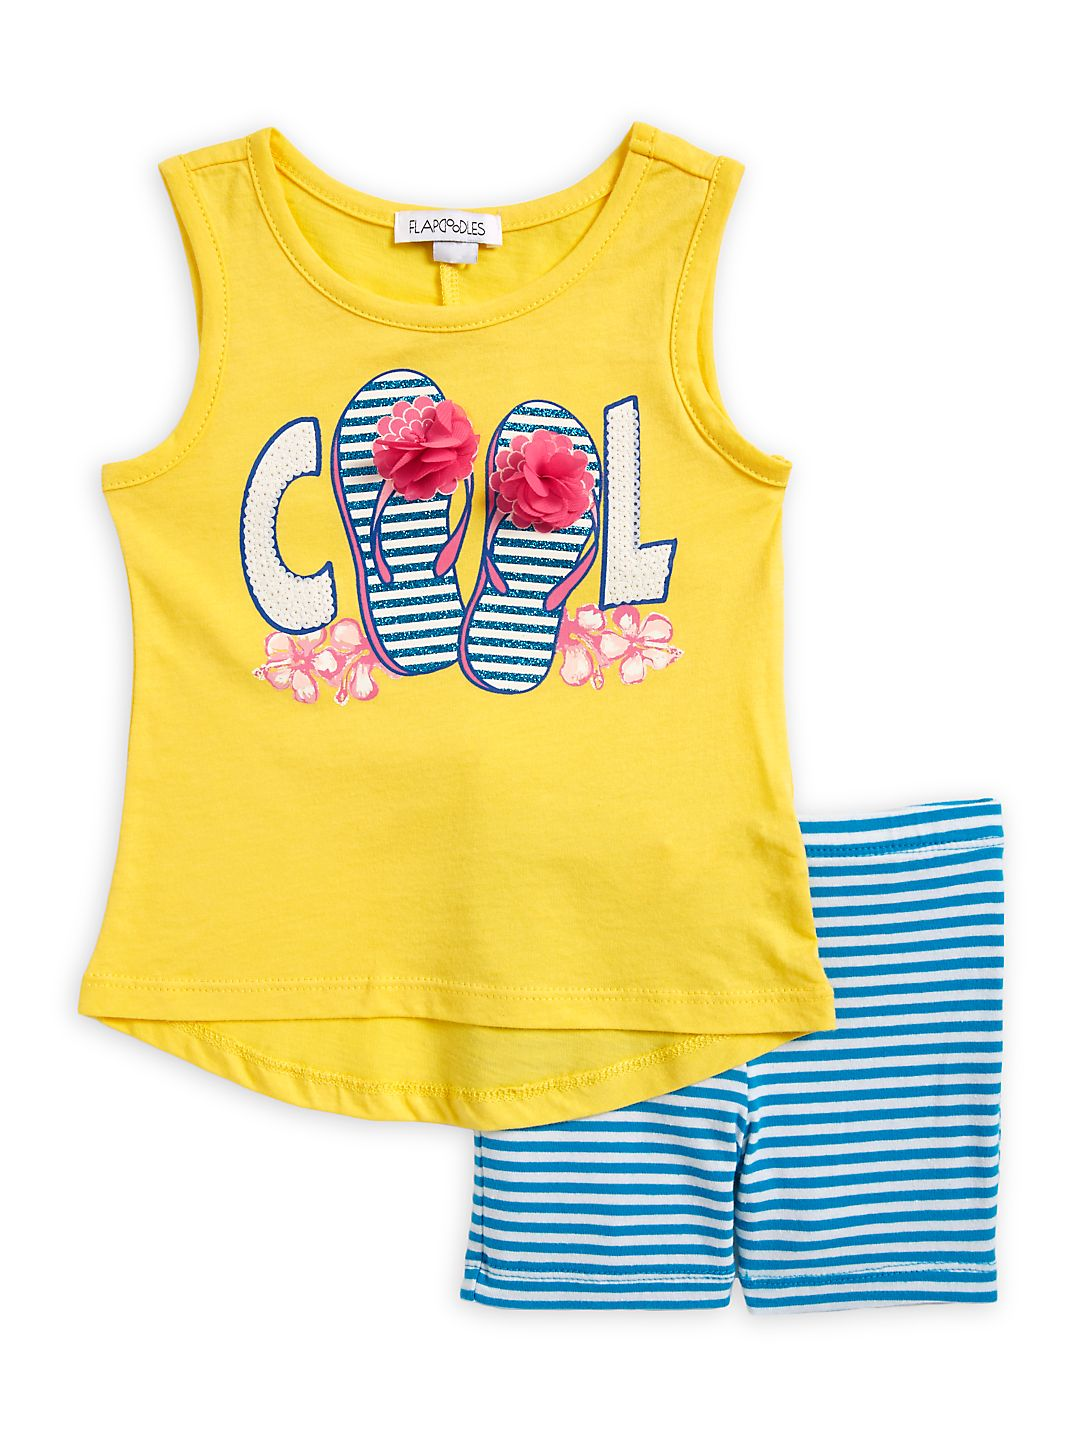 Little Girl's Two-Piece Tank Top And Shorts